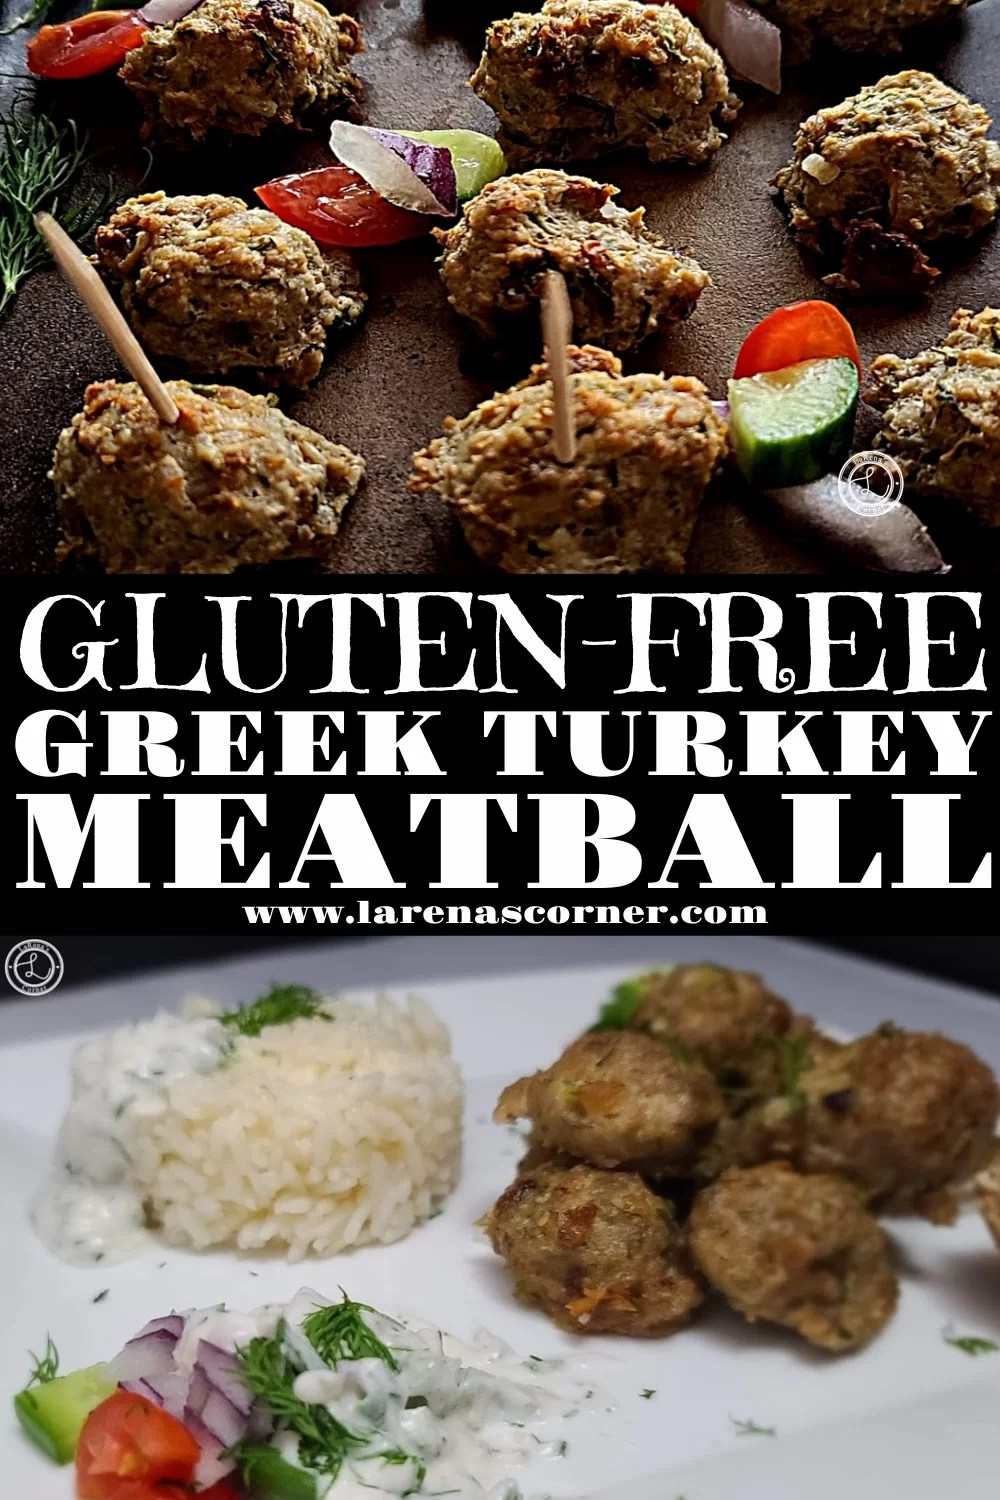 Two different pictures of Gluten-Free Greek Turkey Meatballs. One of a platter of meatballs and one of a plate of meatballs.